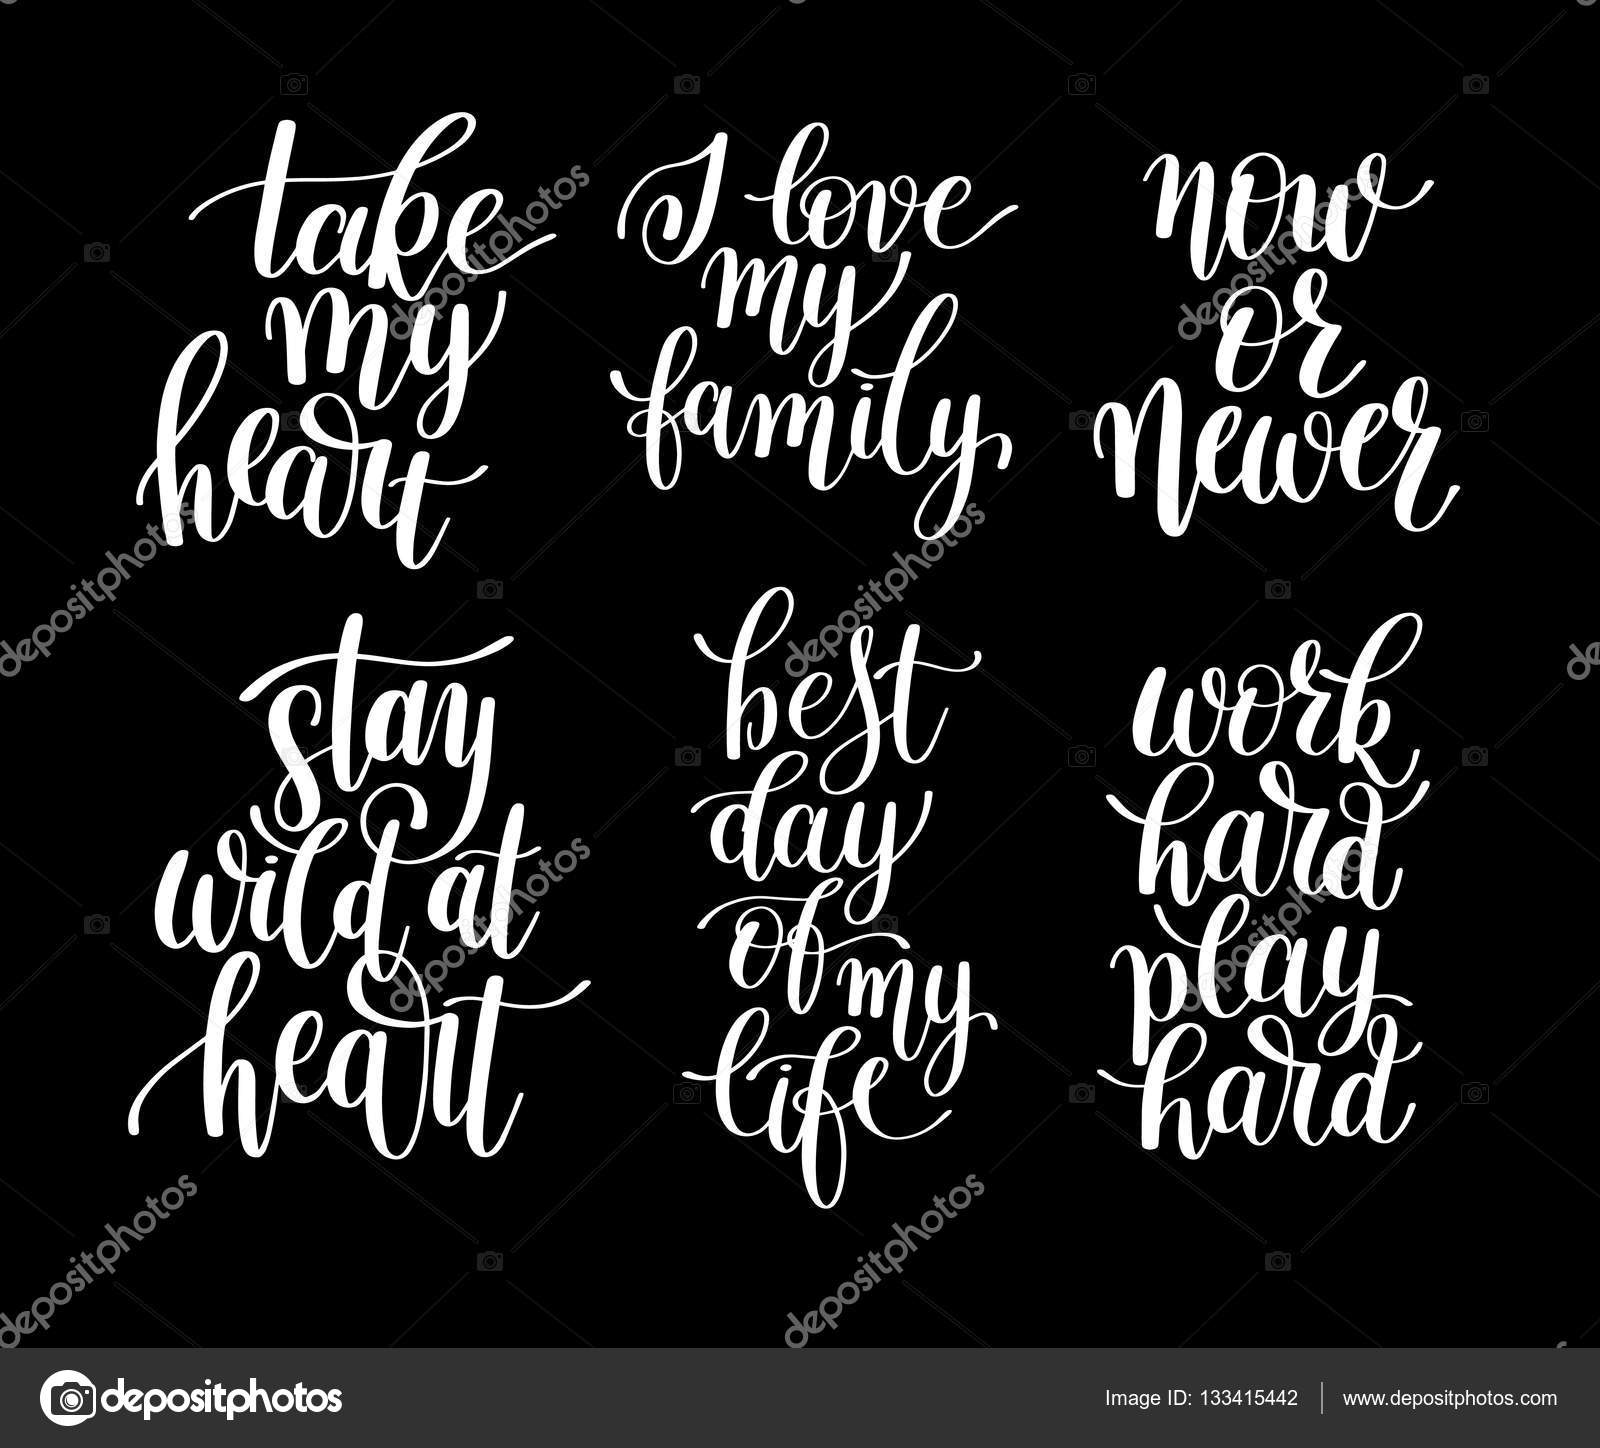 Positive Quotes About Life Set Of 6 Handwritten Lettering Positive Quotes About Life  Stock